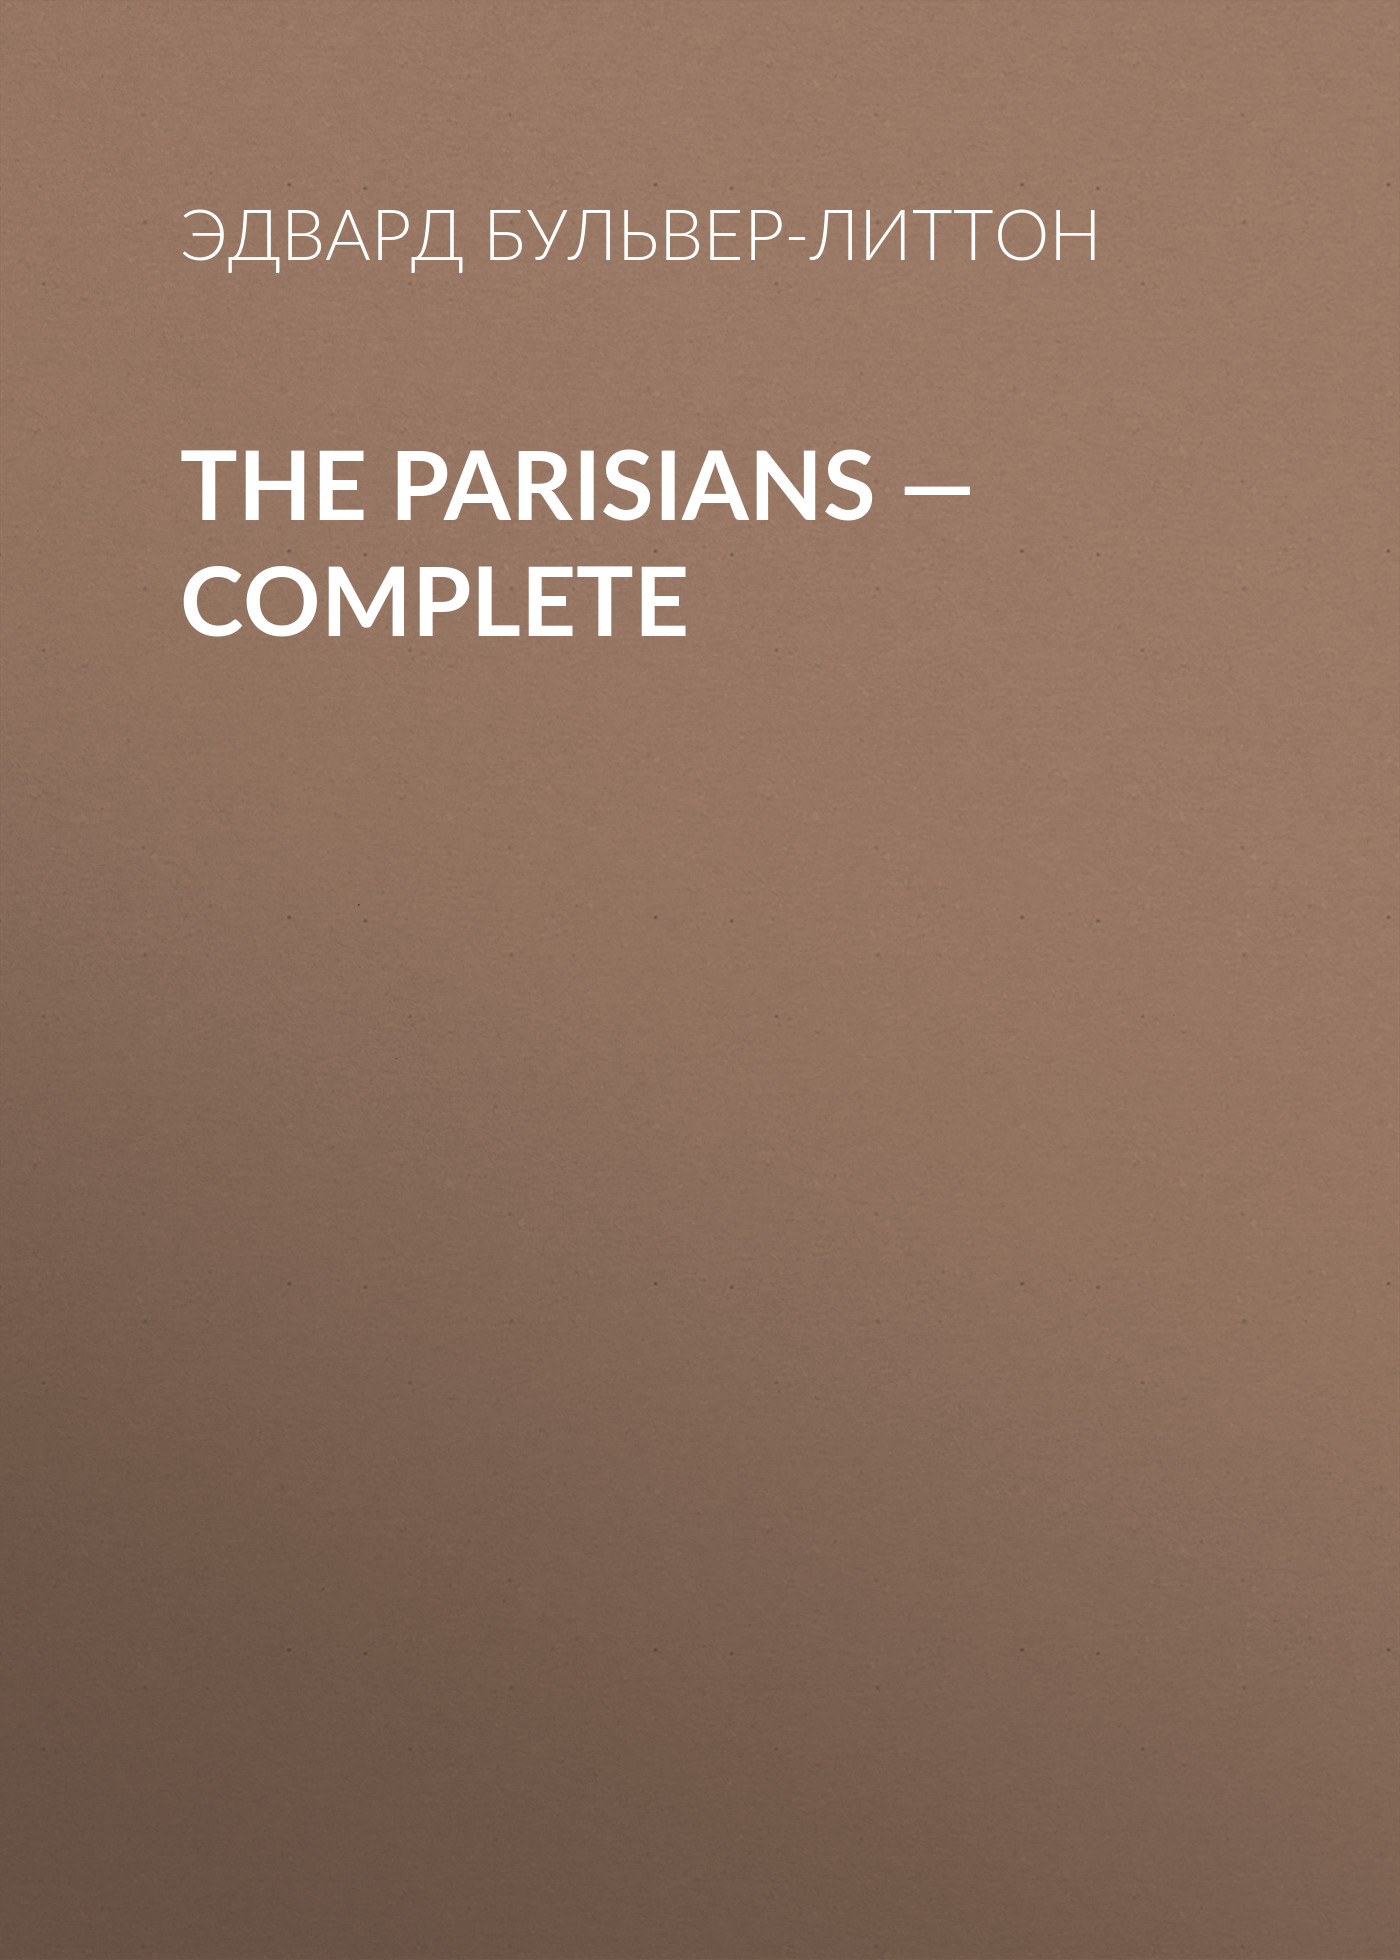 The Parisians — Complete